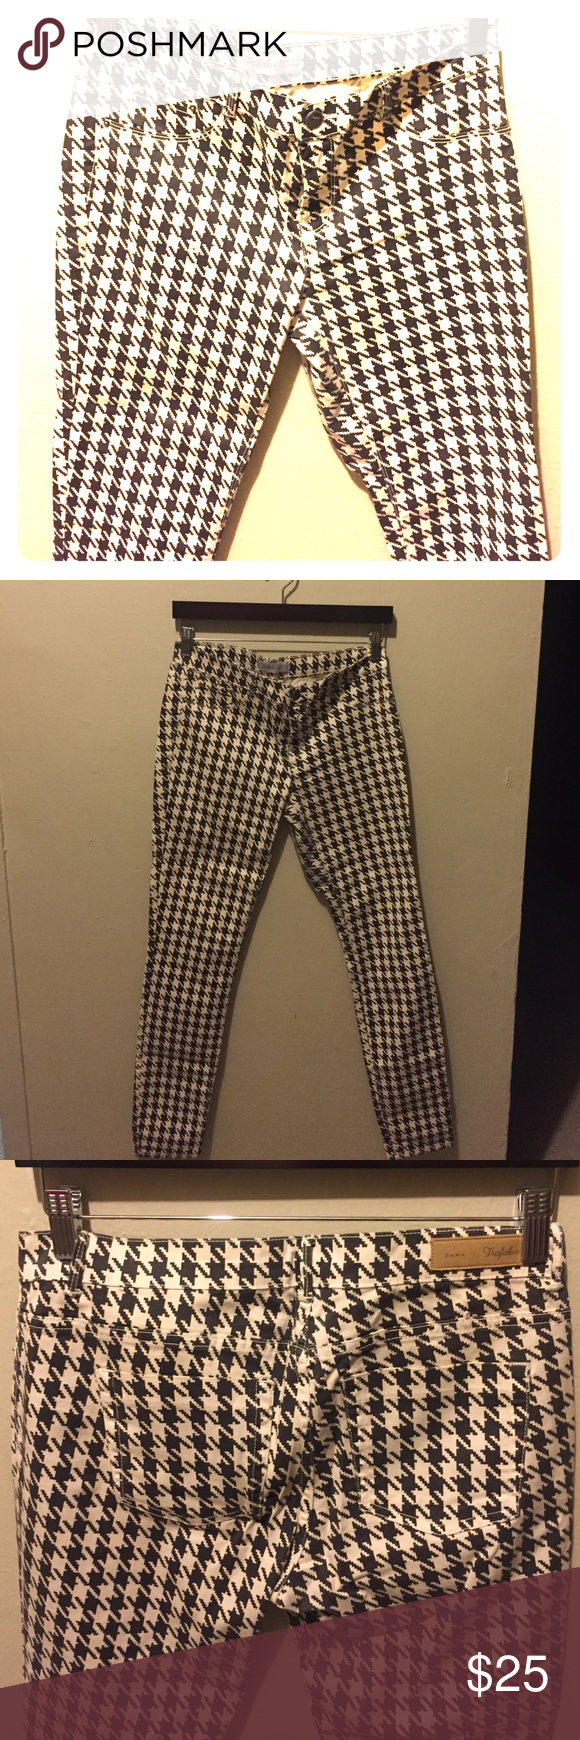 ZARA houndstooth pants Classic houndstooth pattern, with a Black and off white color Zara Pants Leggings